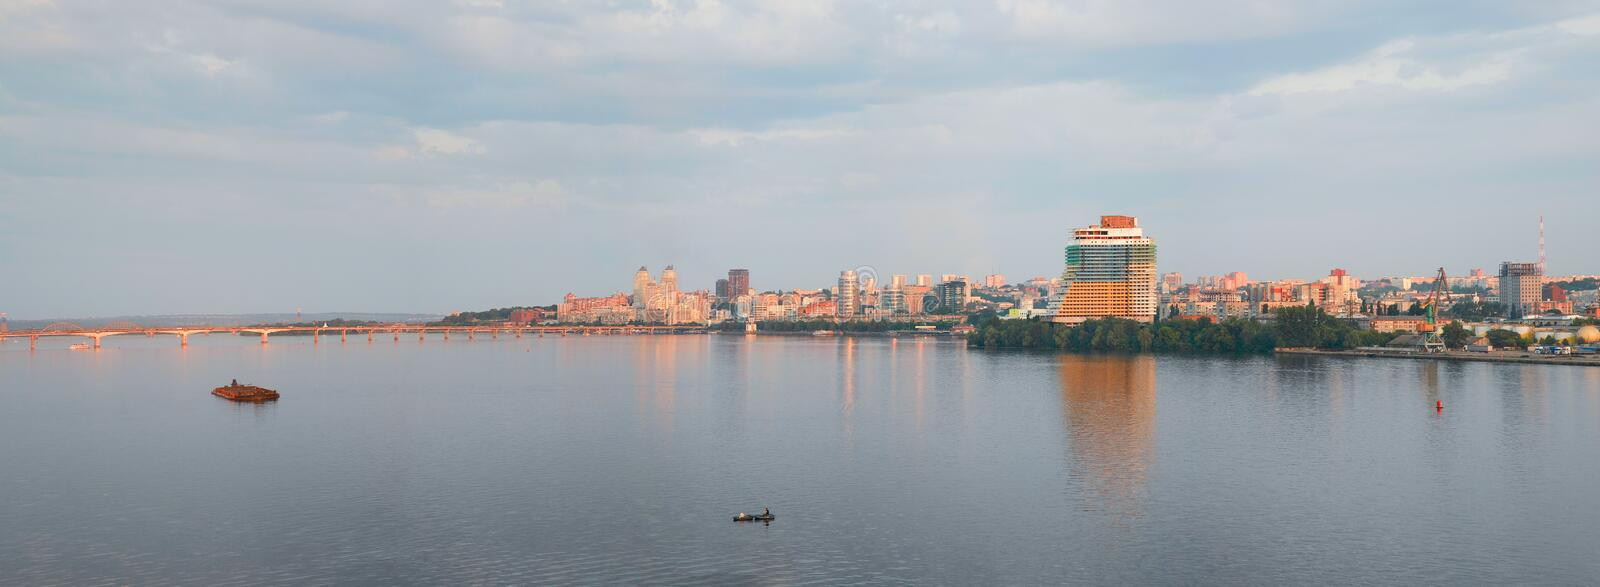 Dnepropetrovsk Dnepr, Dnipro. Dnepropetrovsk, panorama of the city, on the banks of the Dnieper river royalty free stock photos